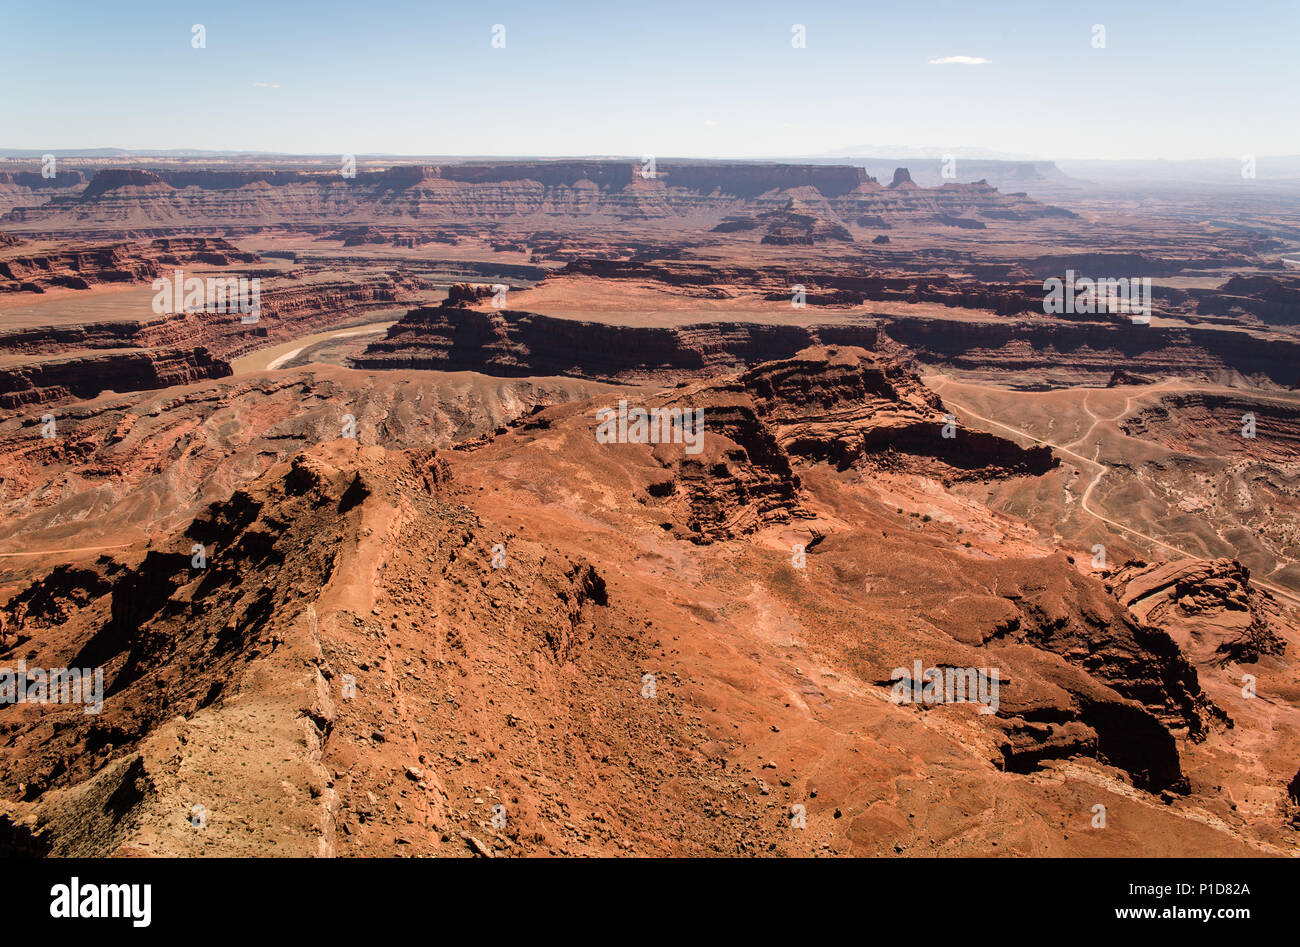 A scenic landscape view at Canyonlands National Park. - Stock Image